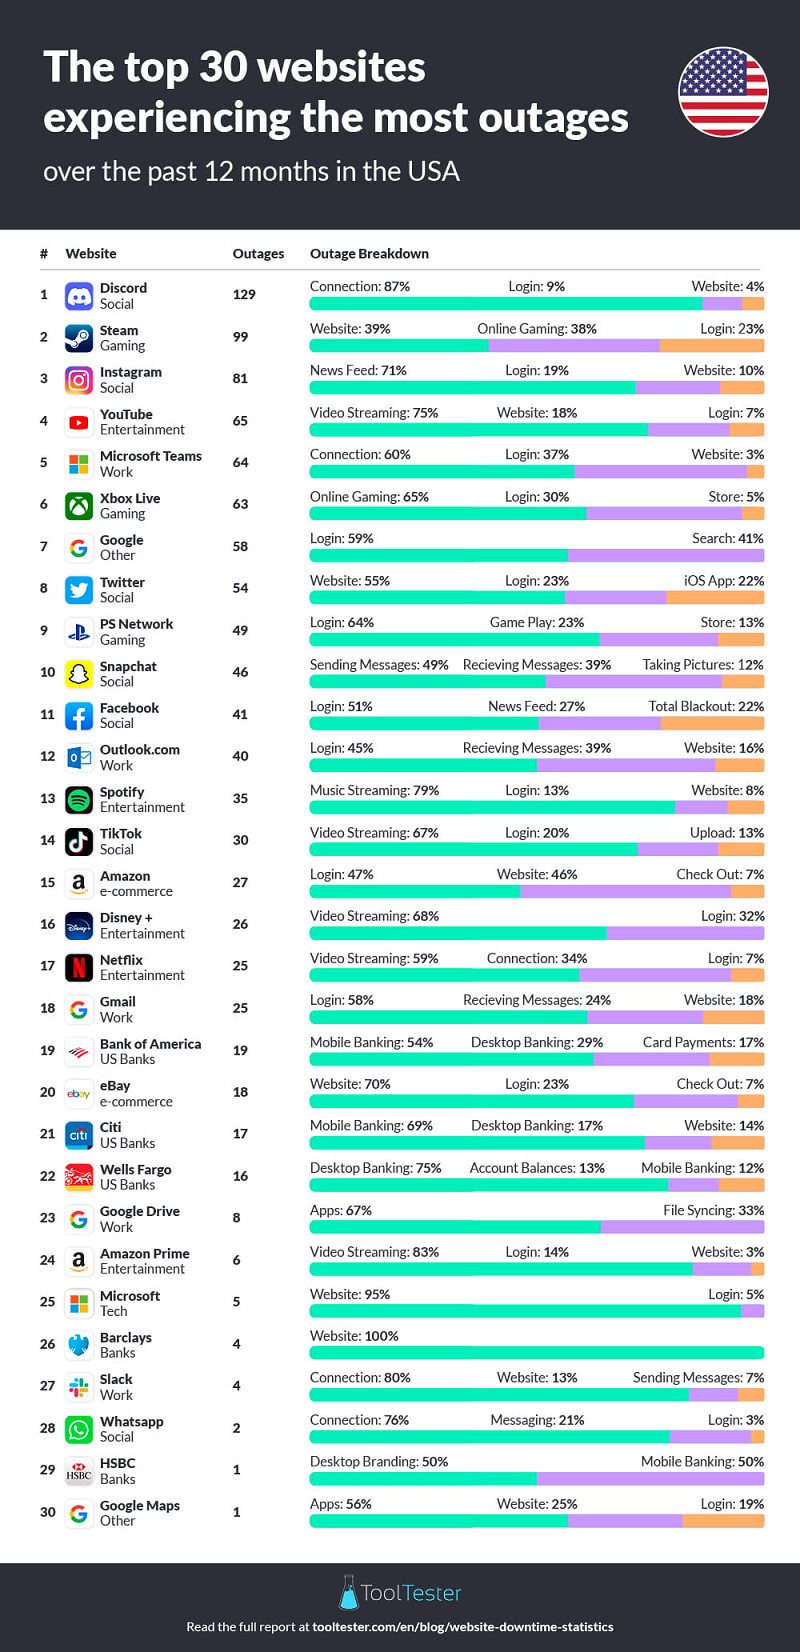 Listing of websites with the most outages over the last year